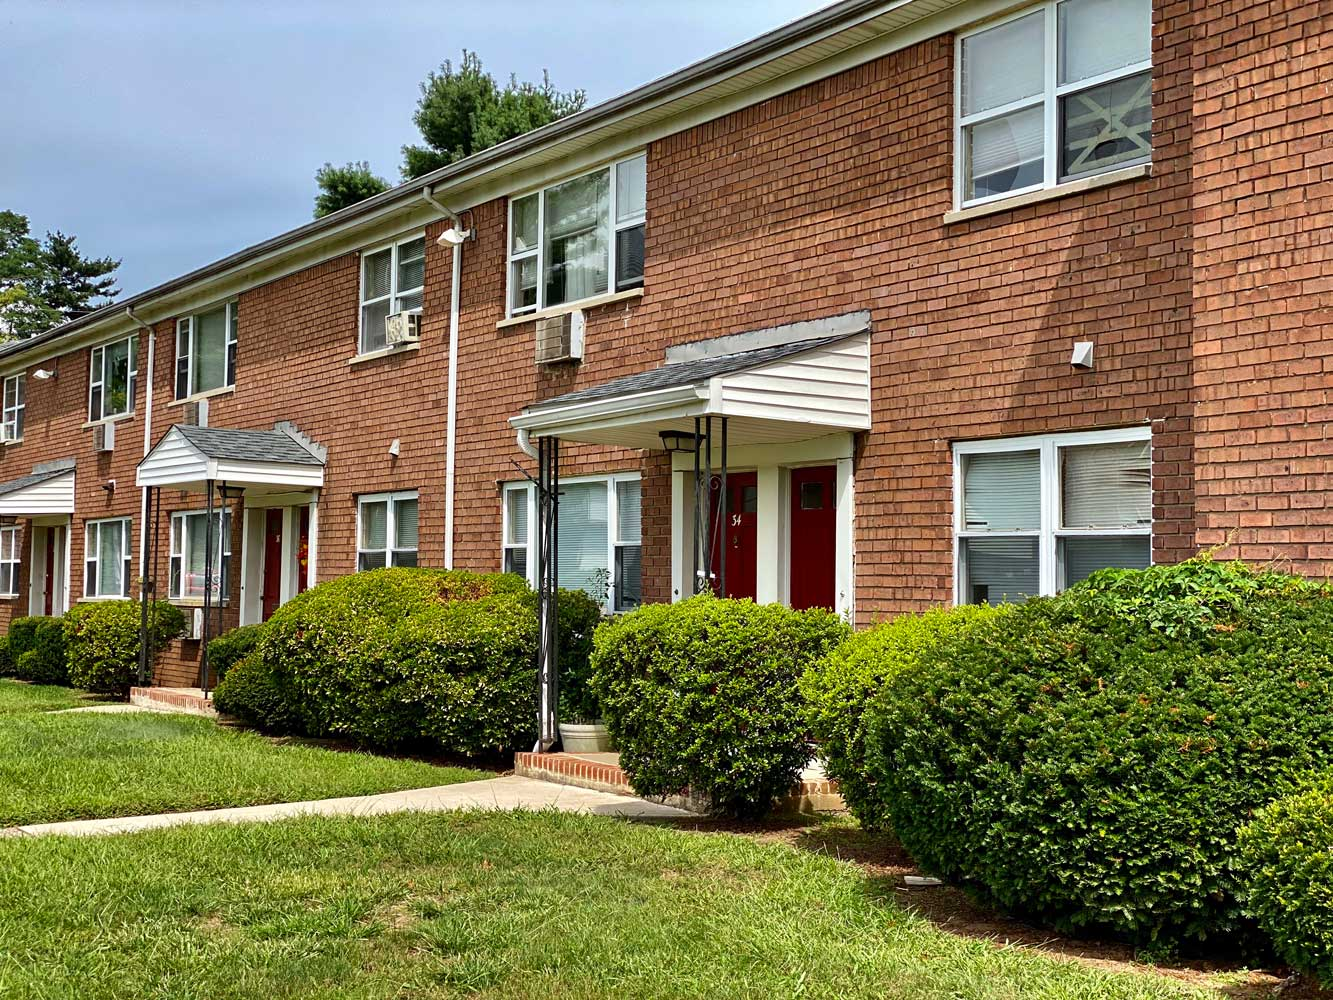 Exterior View at Hampton Gardens Apartments in Middlesex, New Jersey